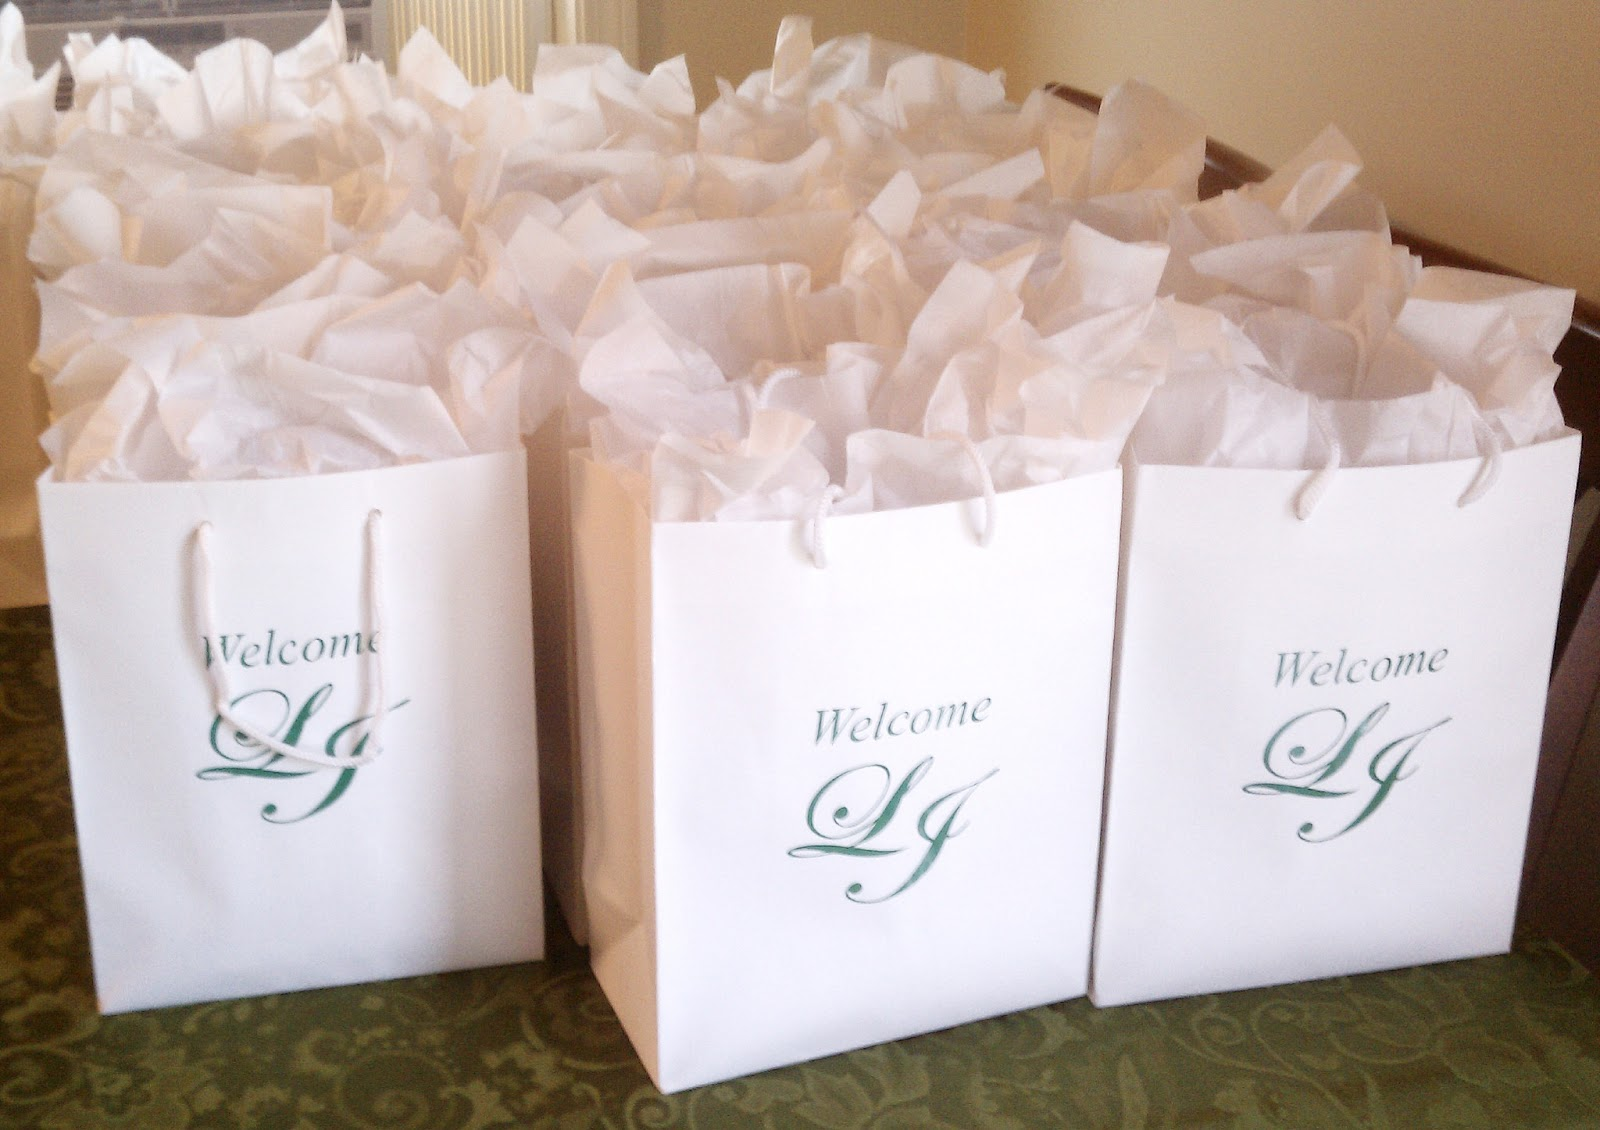 Wedding Welcome Bag Ideas Chicago : Eutopia Events: Wedding Day Welcome Bags